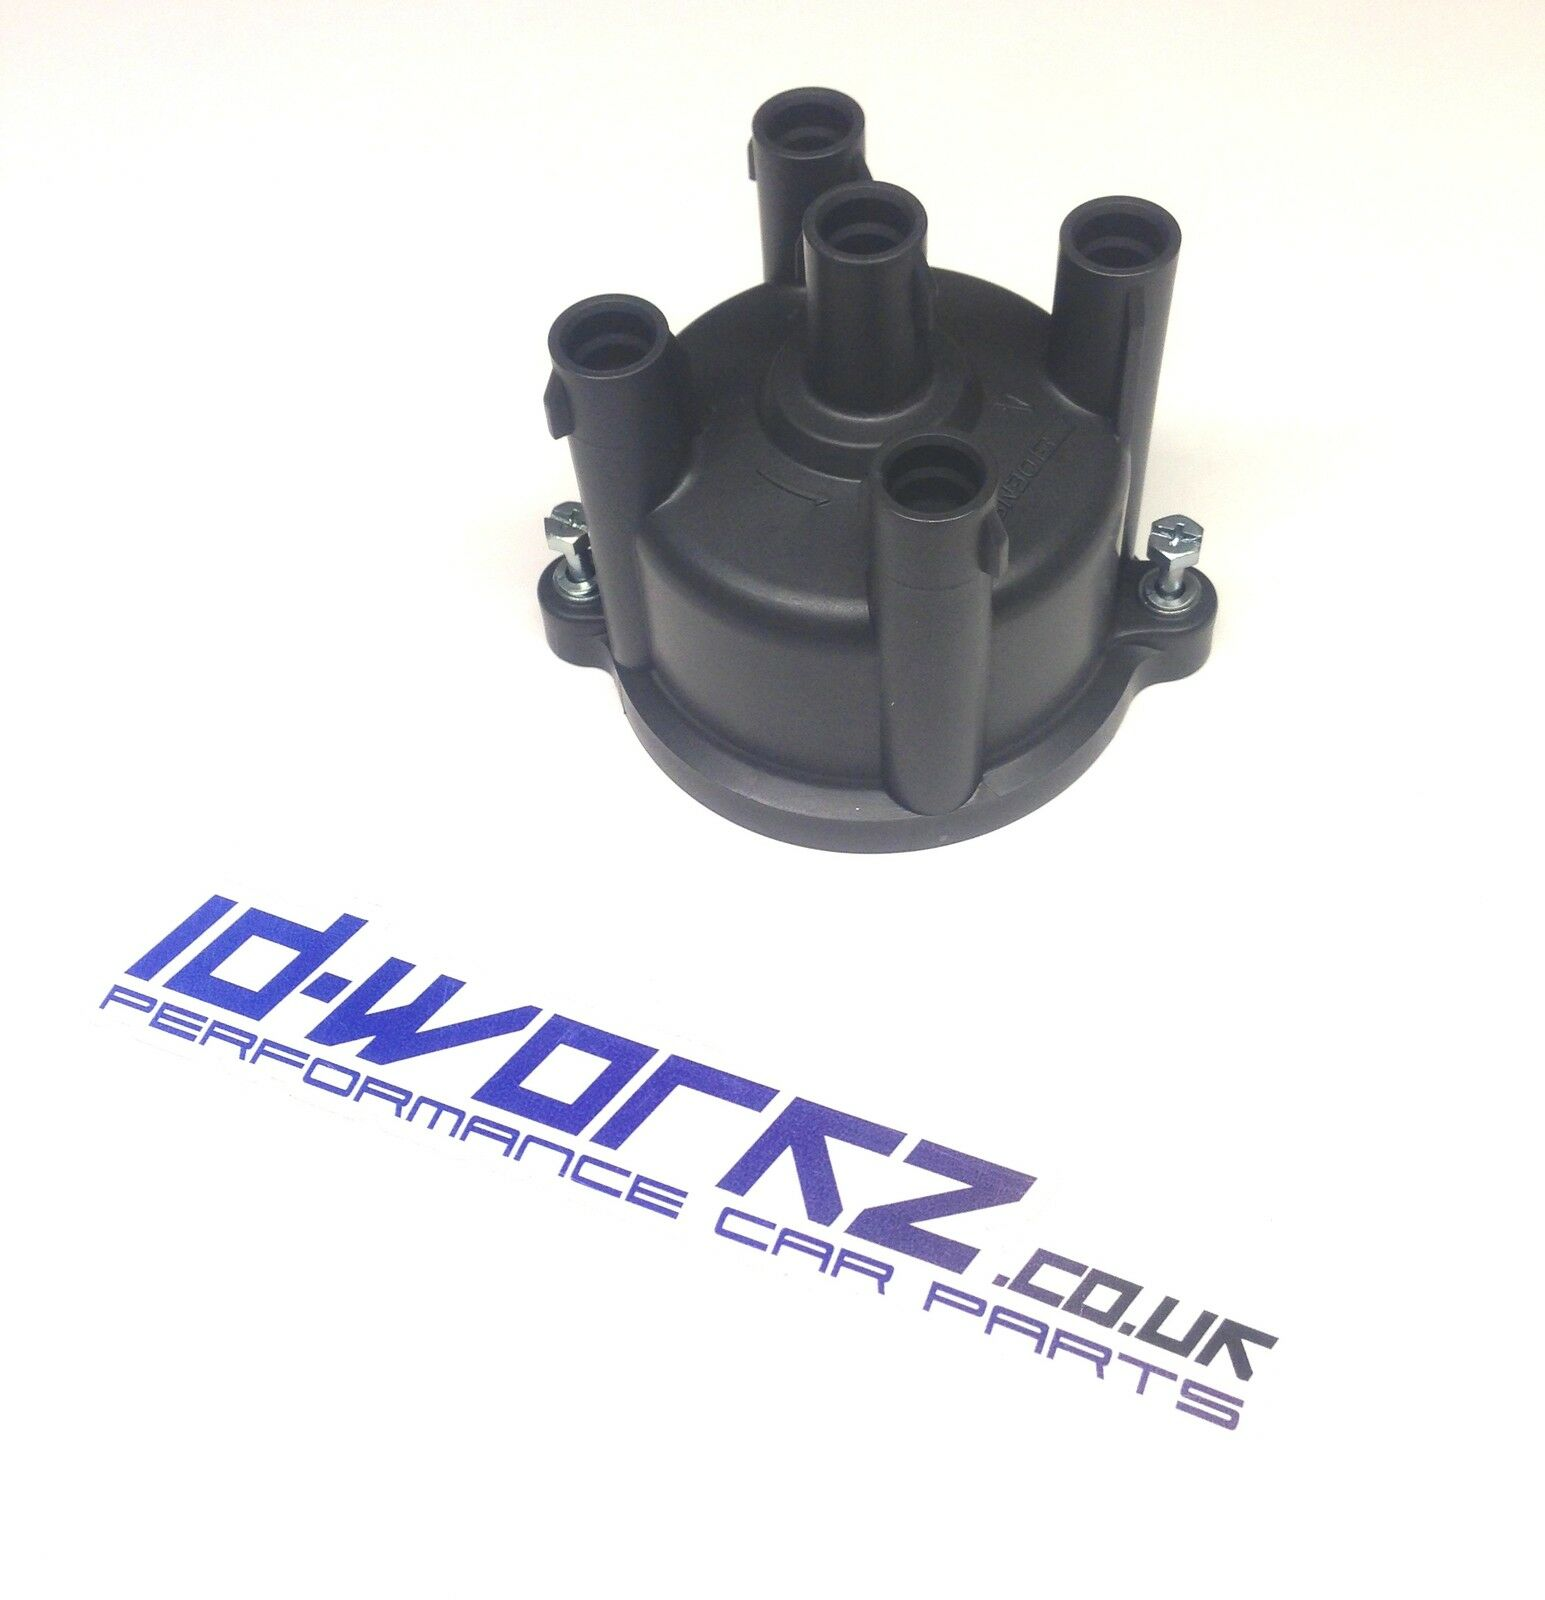 Toyota Starlet 13 Gt Turbo Glanza 4e Fte Distributor Cap Oem Fuse Box 1 Of 1only 3 Available